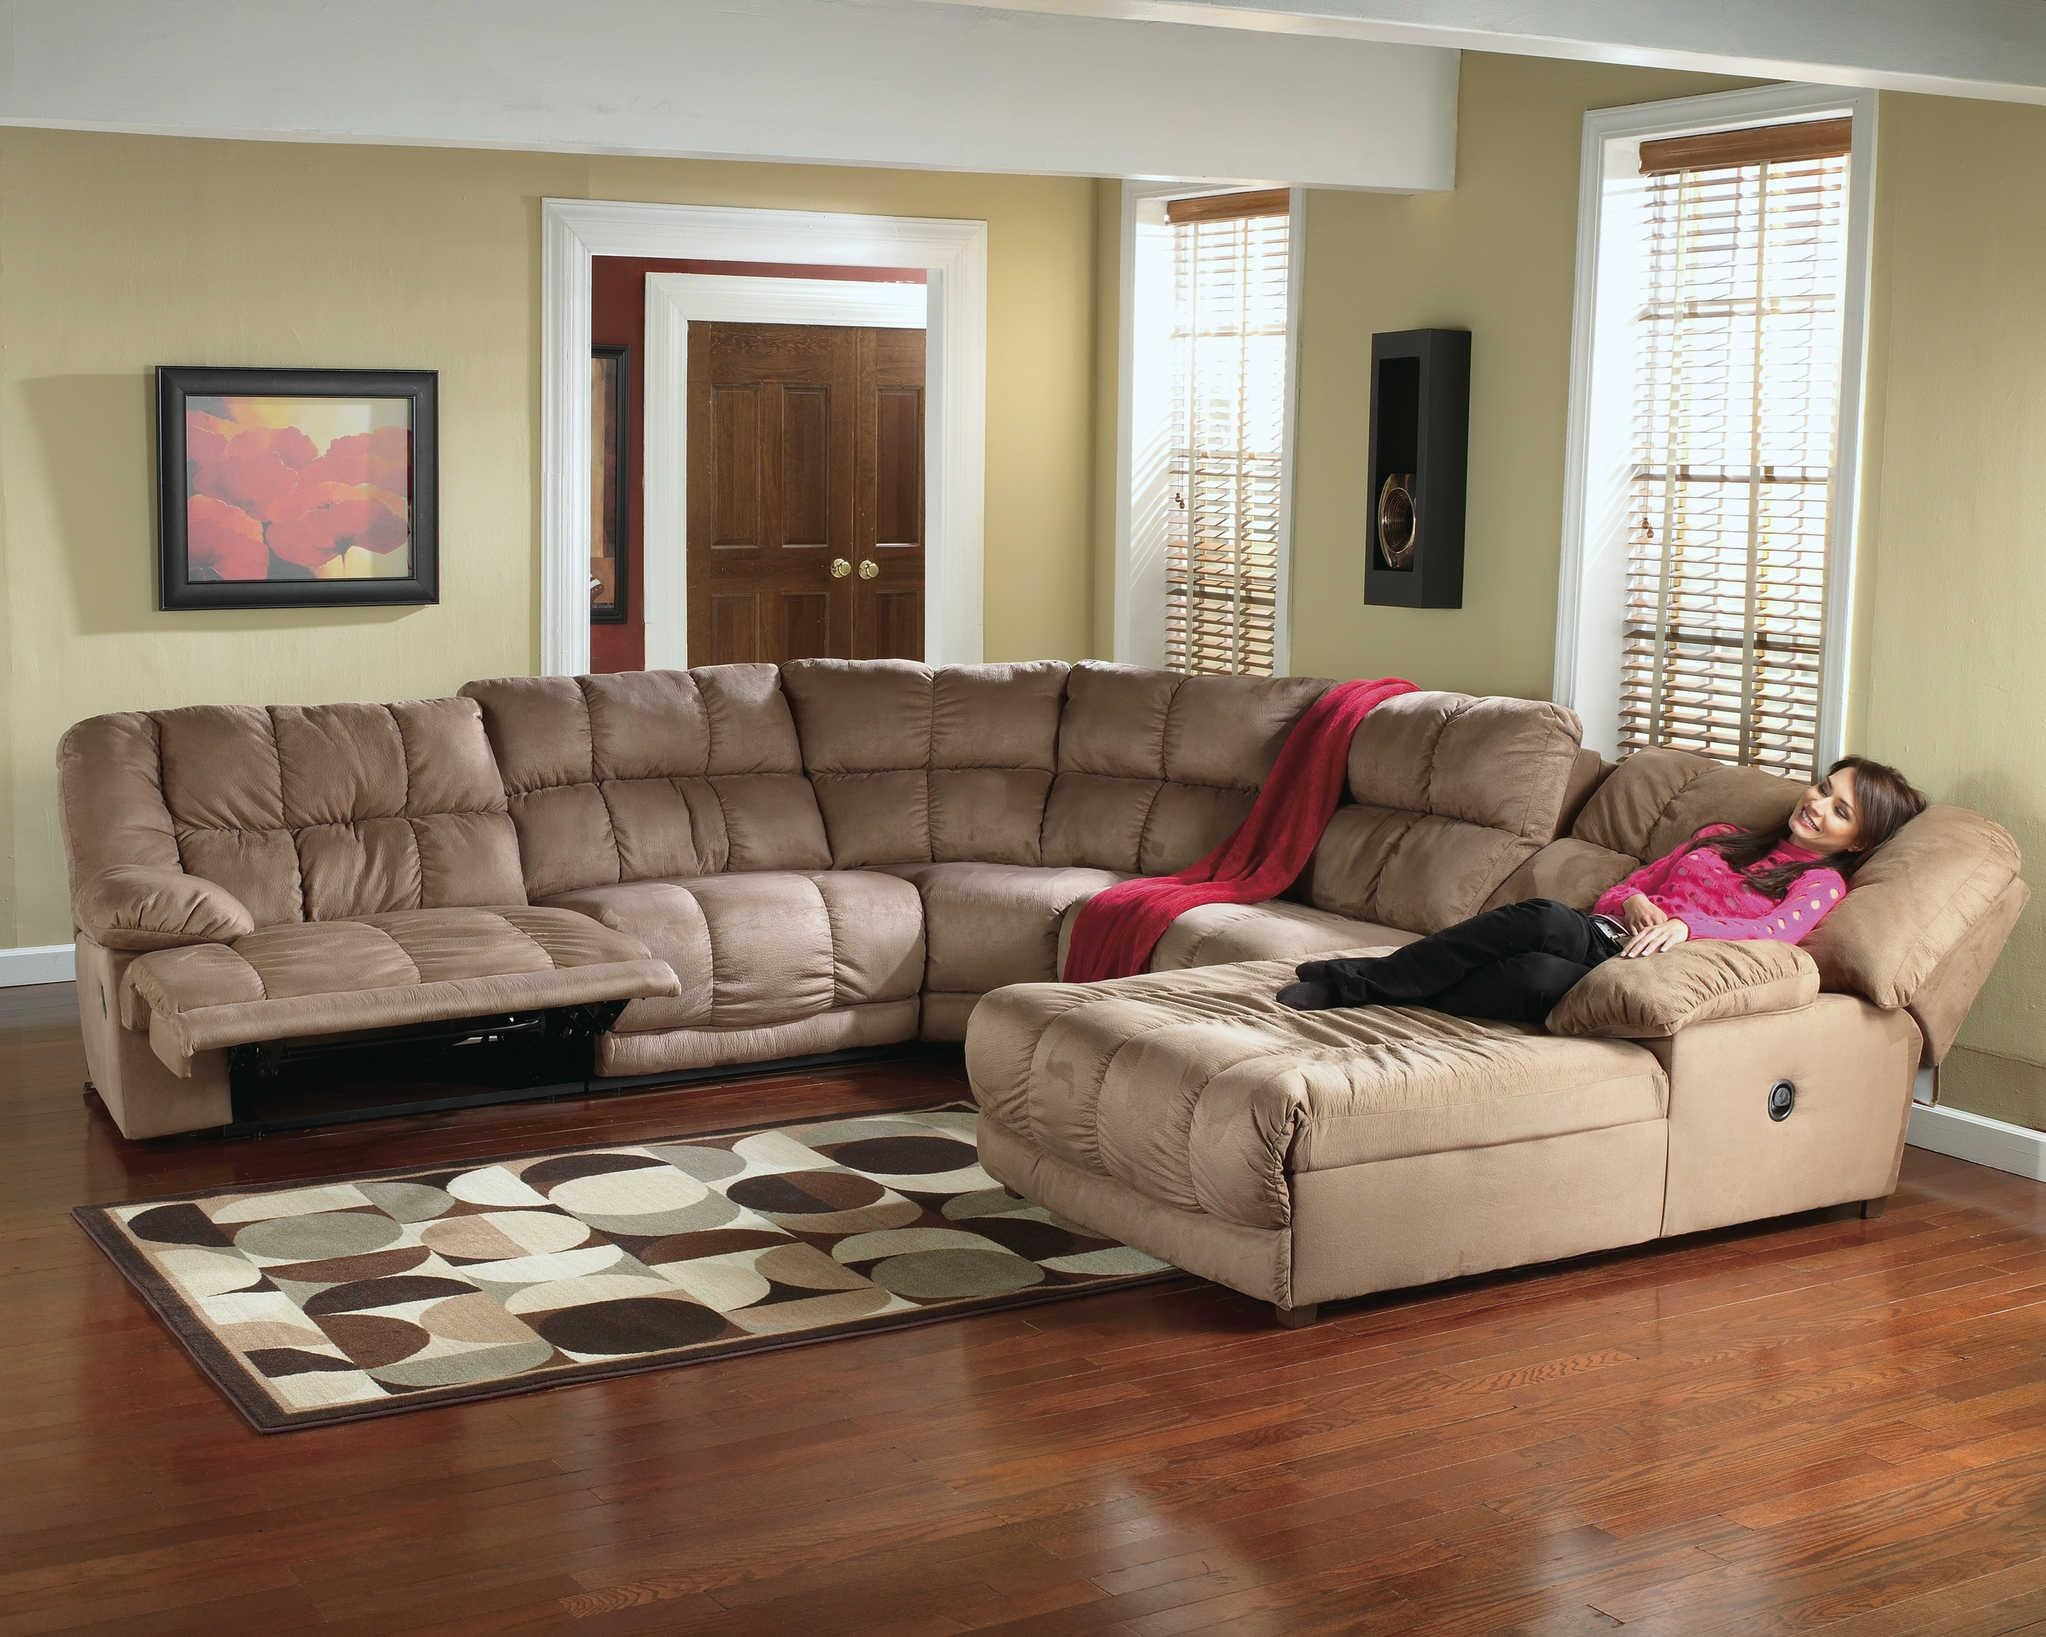 79 Exciting Large Sectional Sofas With Recliners Home Design | Hoozoo pertaining to Florence Large Sofas